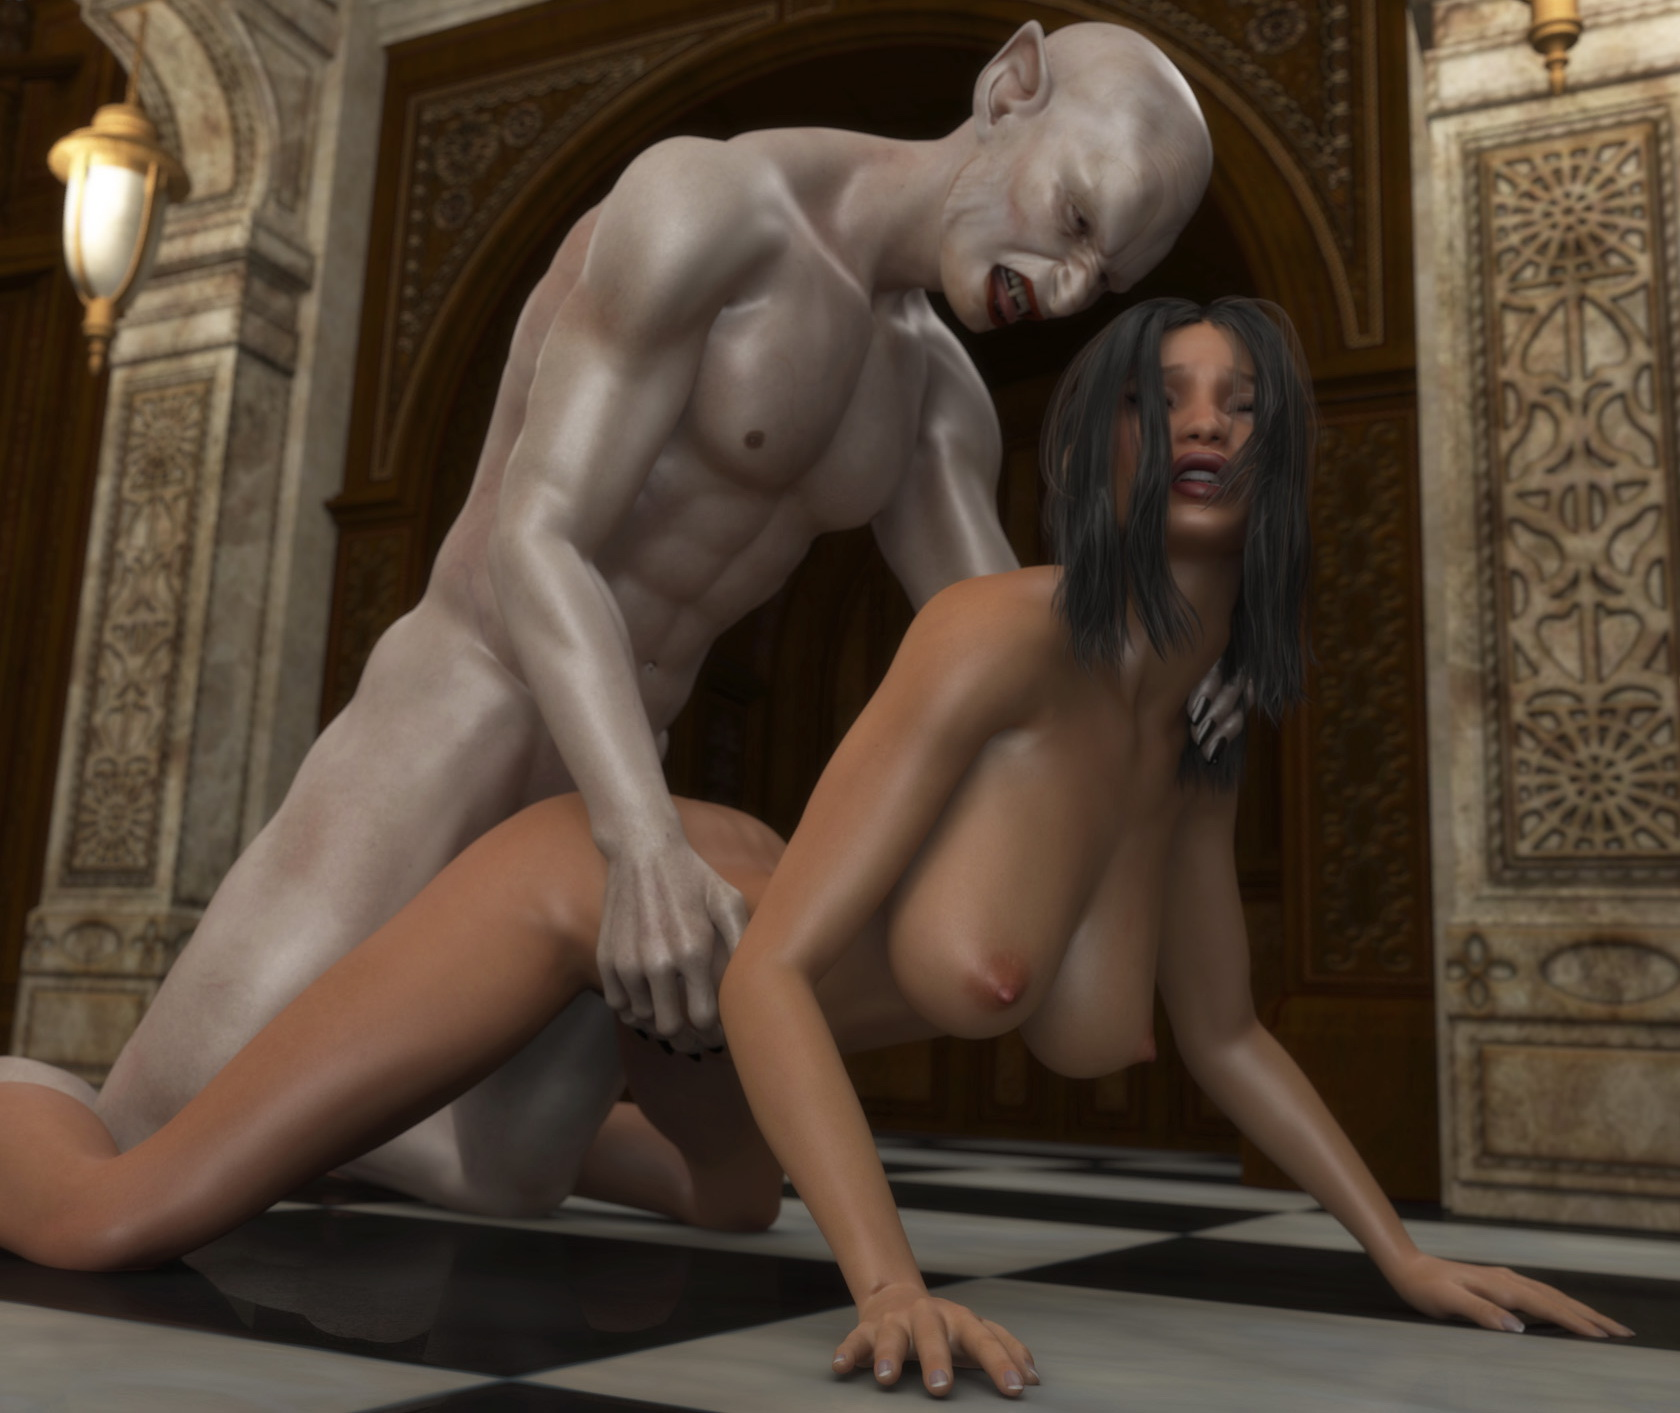 Fre monster porn download softcore galleries